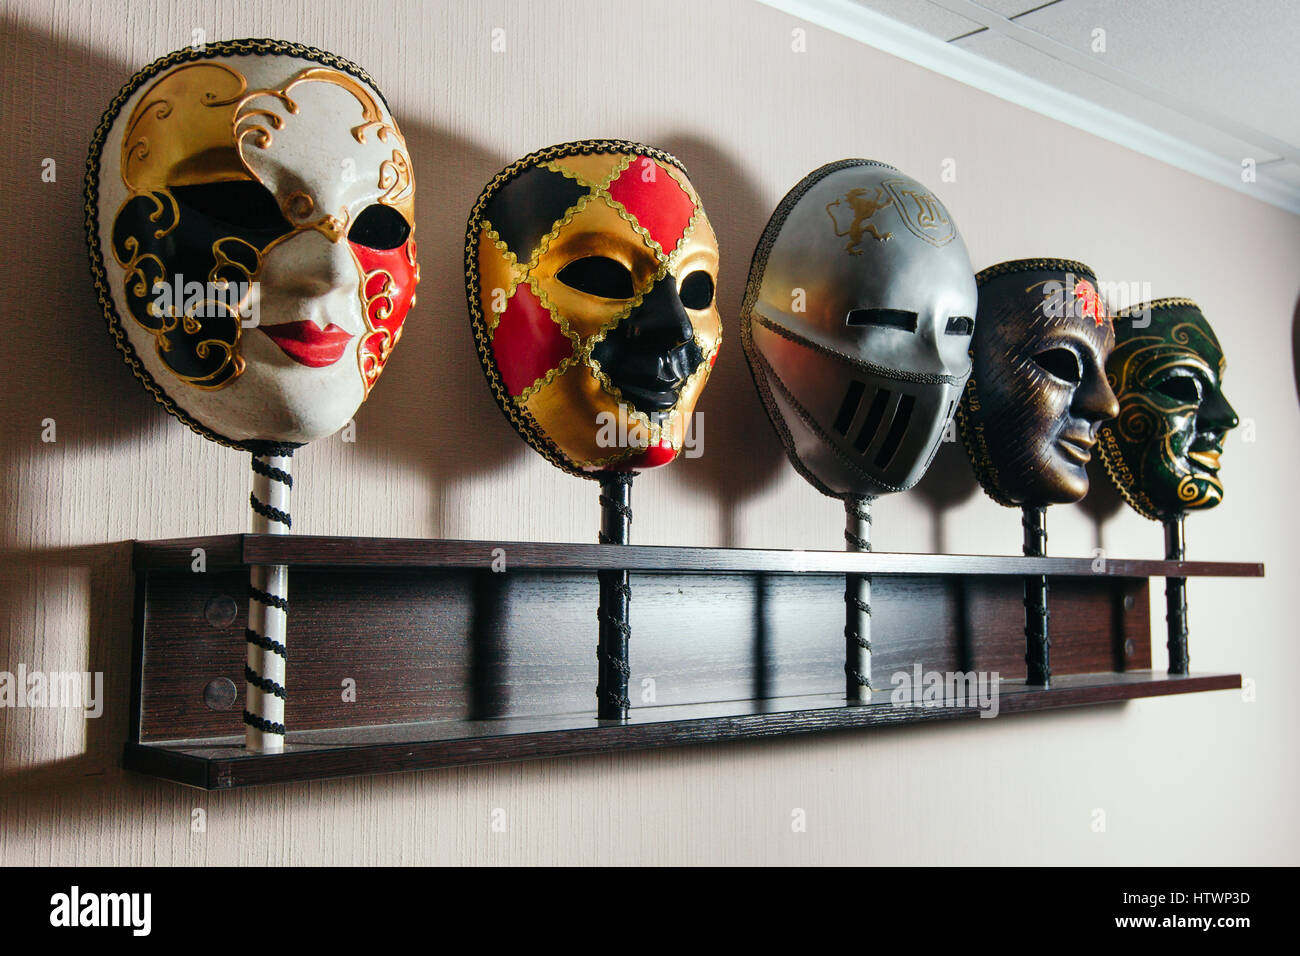 Masks for playing in the mafia stand on the shelf. - Stock Image